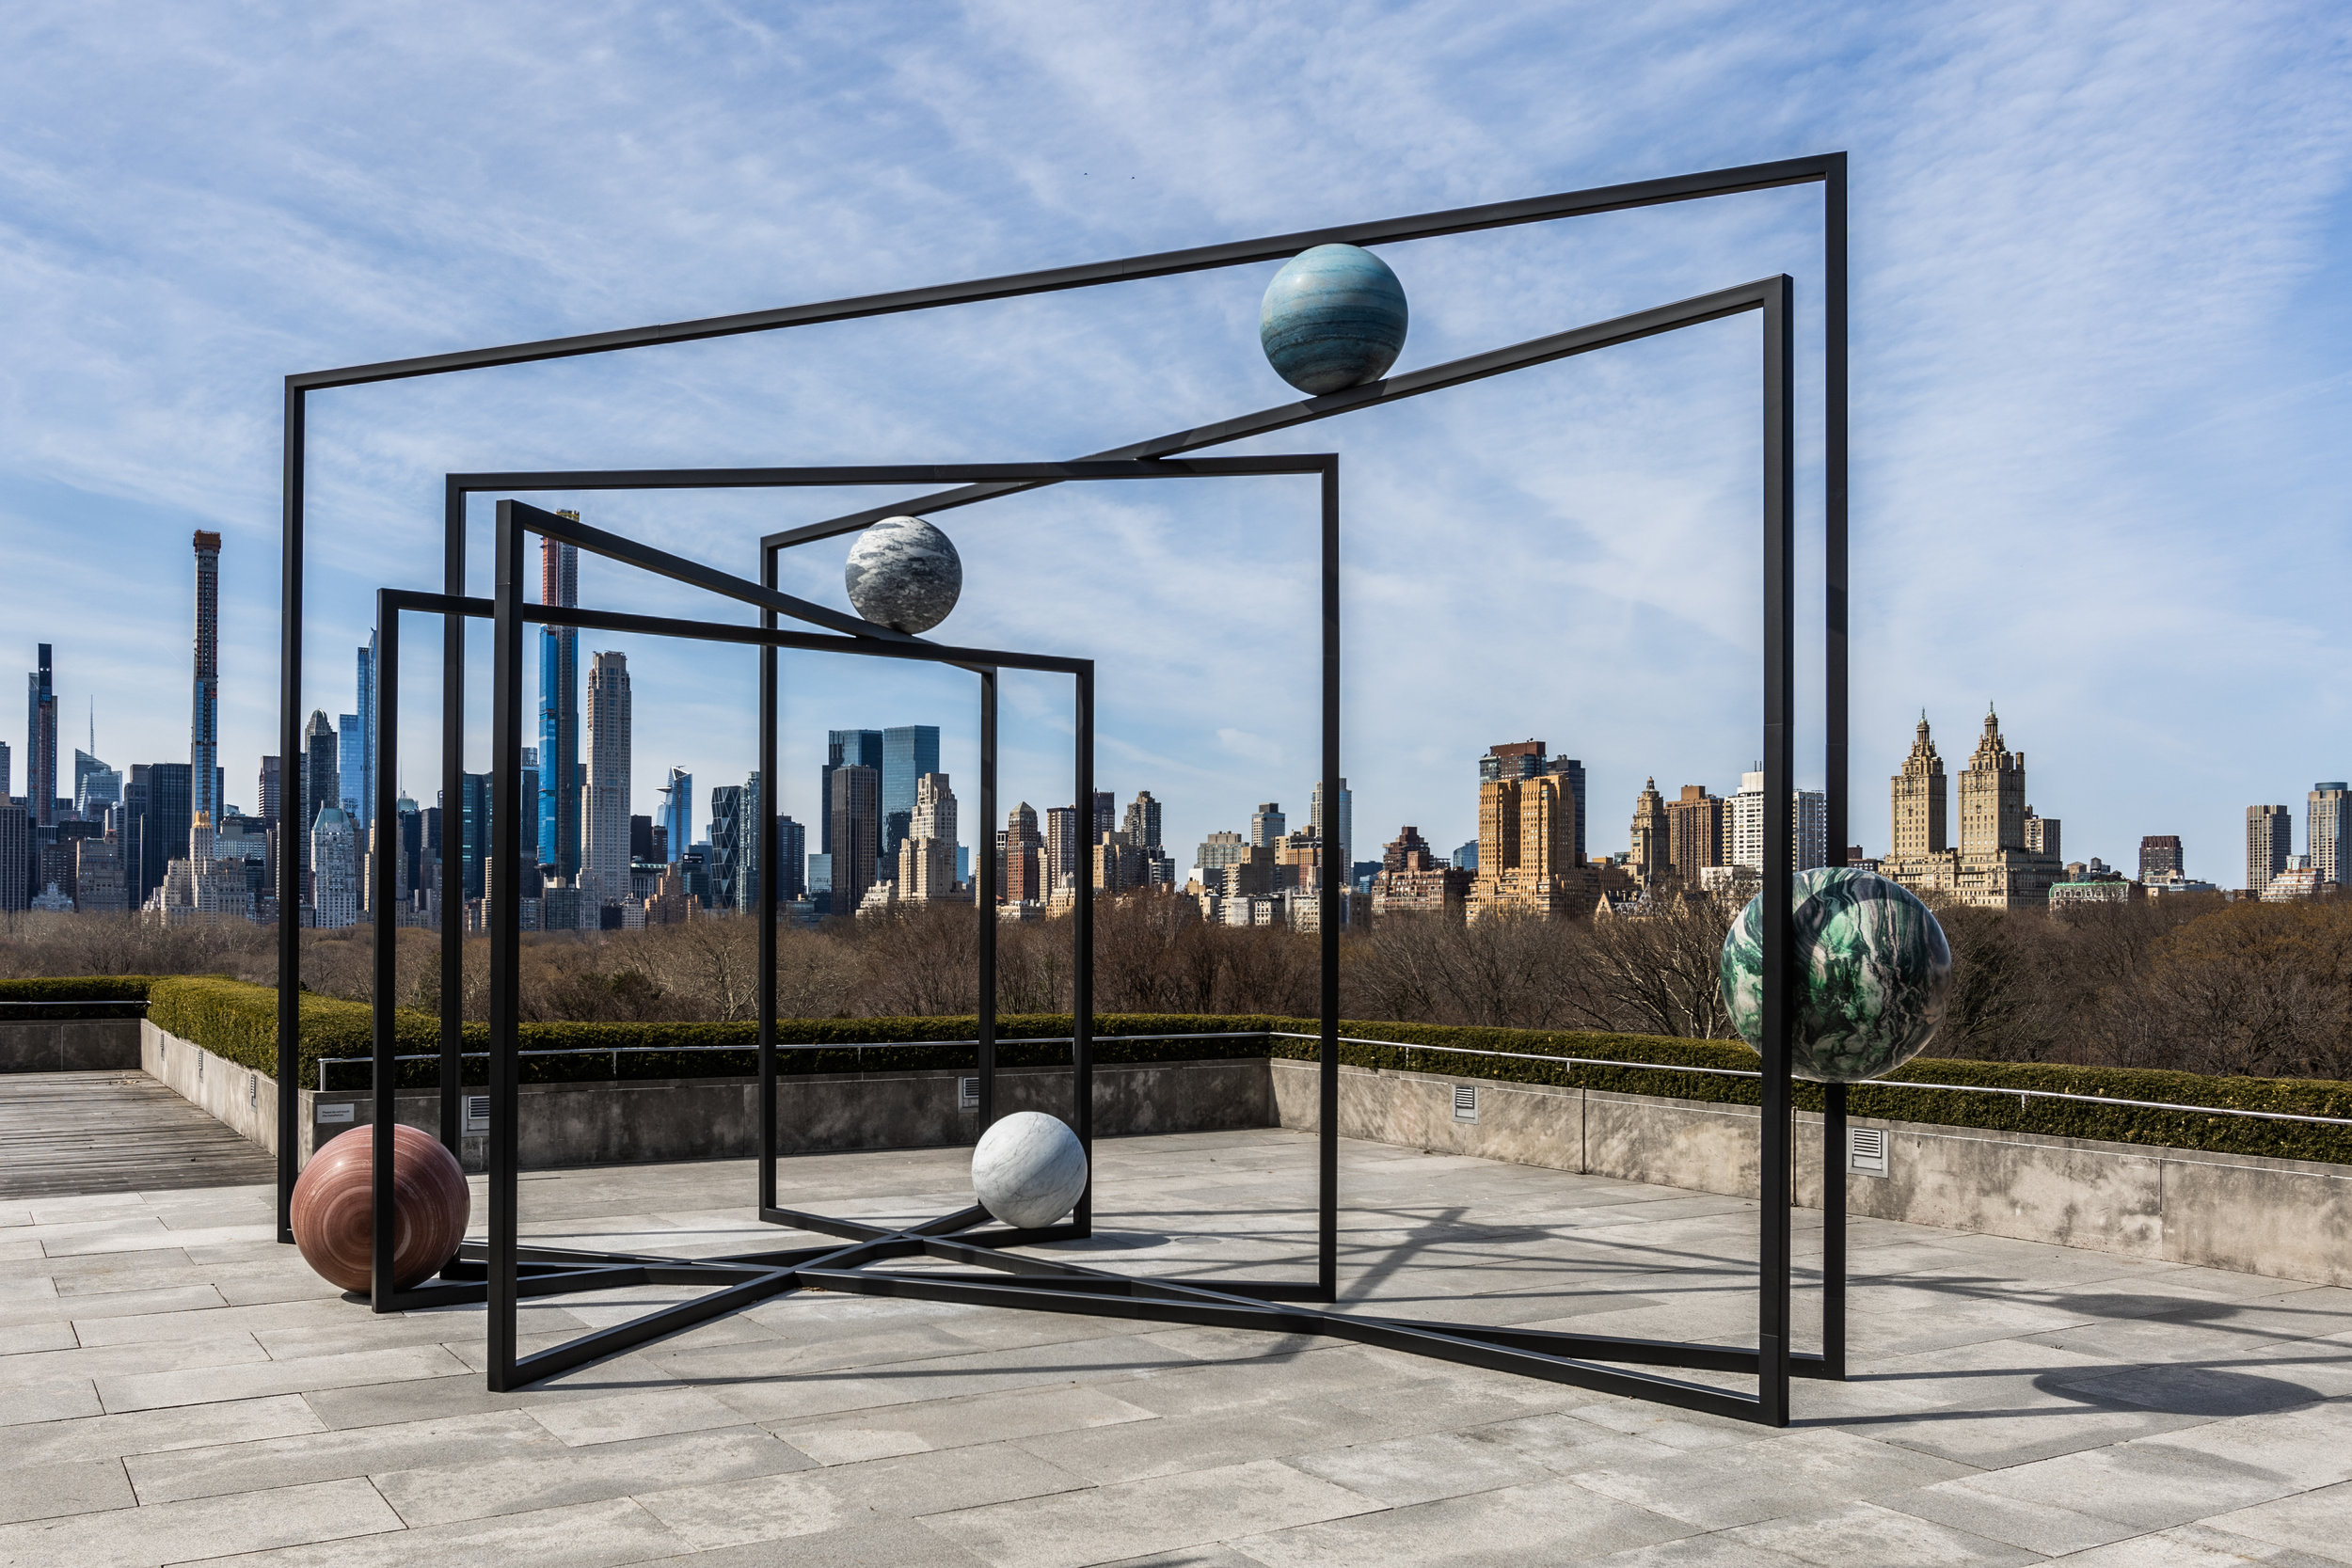 Alicja Kwade (b.1979, Poland). Installation view of ParaPivot I (2019) for The Roof Garden Commission: Alicja Kwade, ParaPivot at The Metropolitan Museum of Art, 2019. Courtesy of the artist; 303 Gallery, New York; KÖNIG GALERIE, Berlin/London; and kamel mennour, Paris/London. Image credit: The Metropolitan Museum of Art, Photograph by Hyla Skopitz